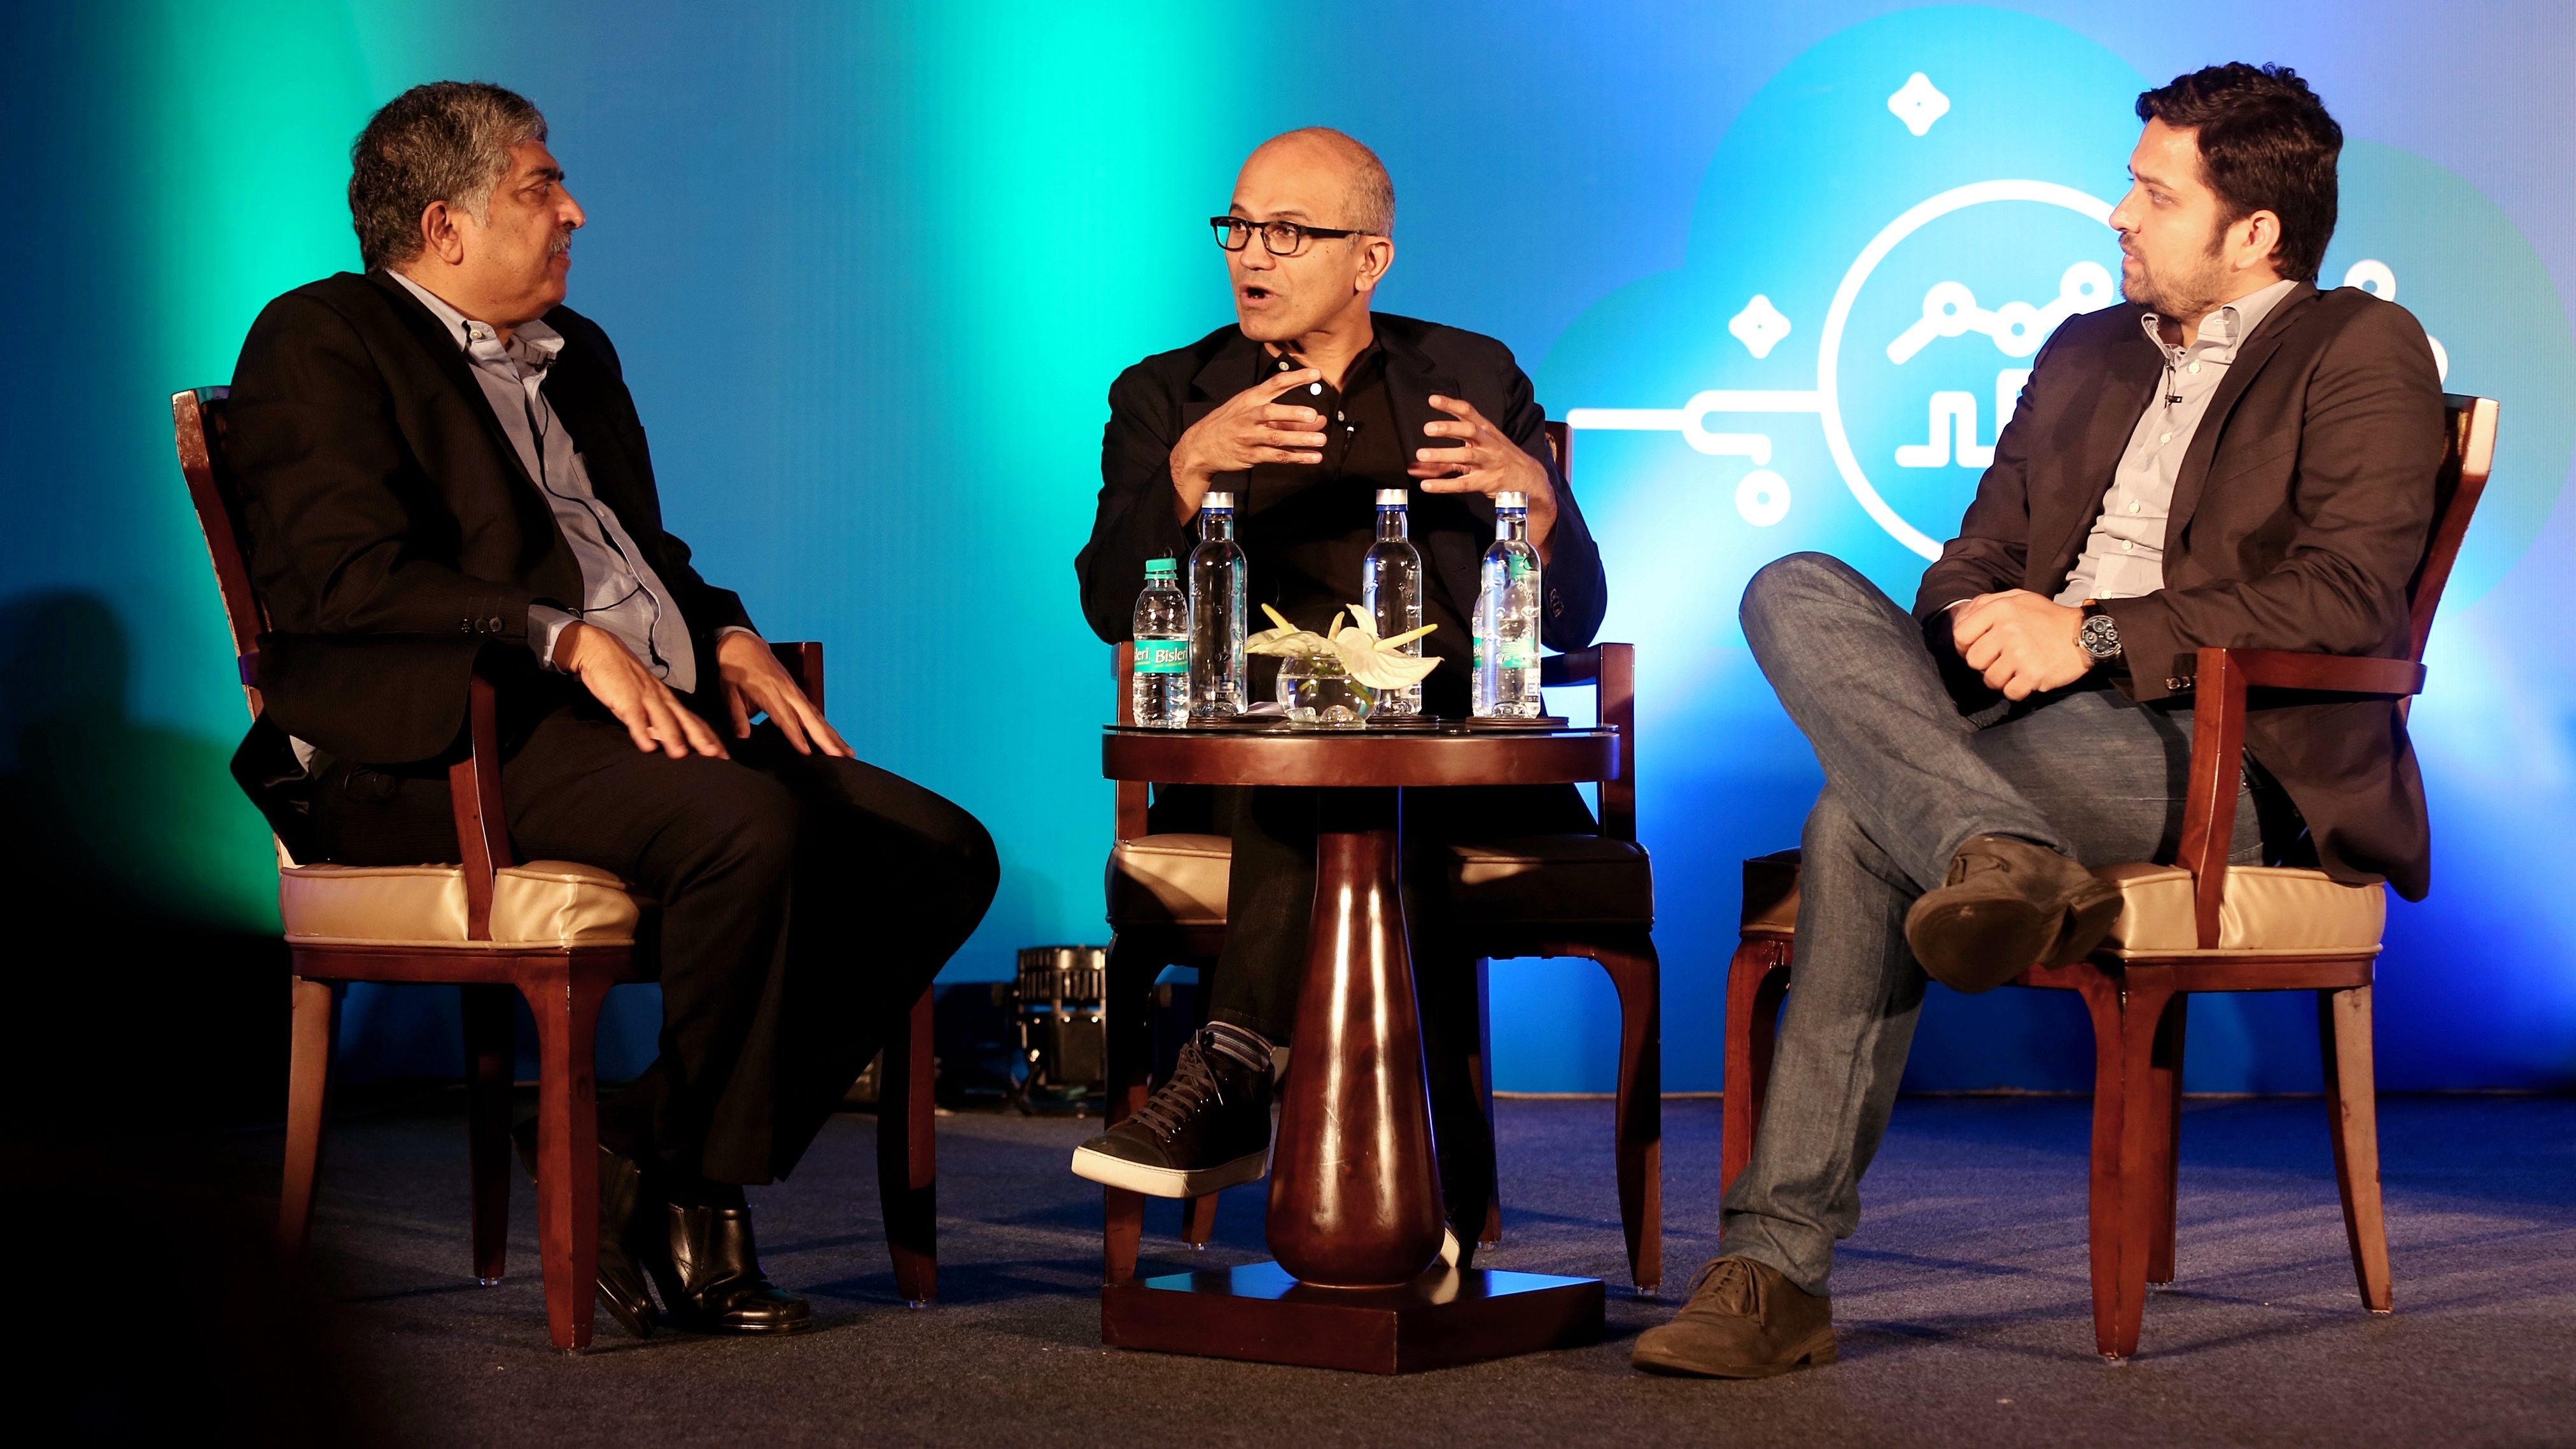 Co-founder of Infosys Technologies Nandan Nilekani (L), Microsoft Chief Executive Officer Satya Nadella (C) and Group Chief Executive Officer and Co-Founder of Flipkart Binny Bansal (R) converse during an interactive session on Indian startups use of Microsoft Cloud for artificial intelligence, in Bangalore, India, 20 February 2017.